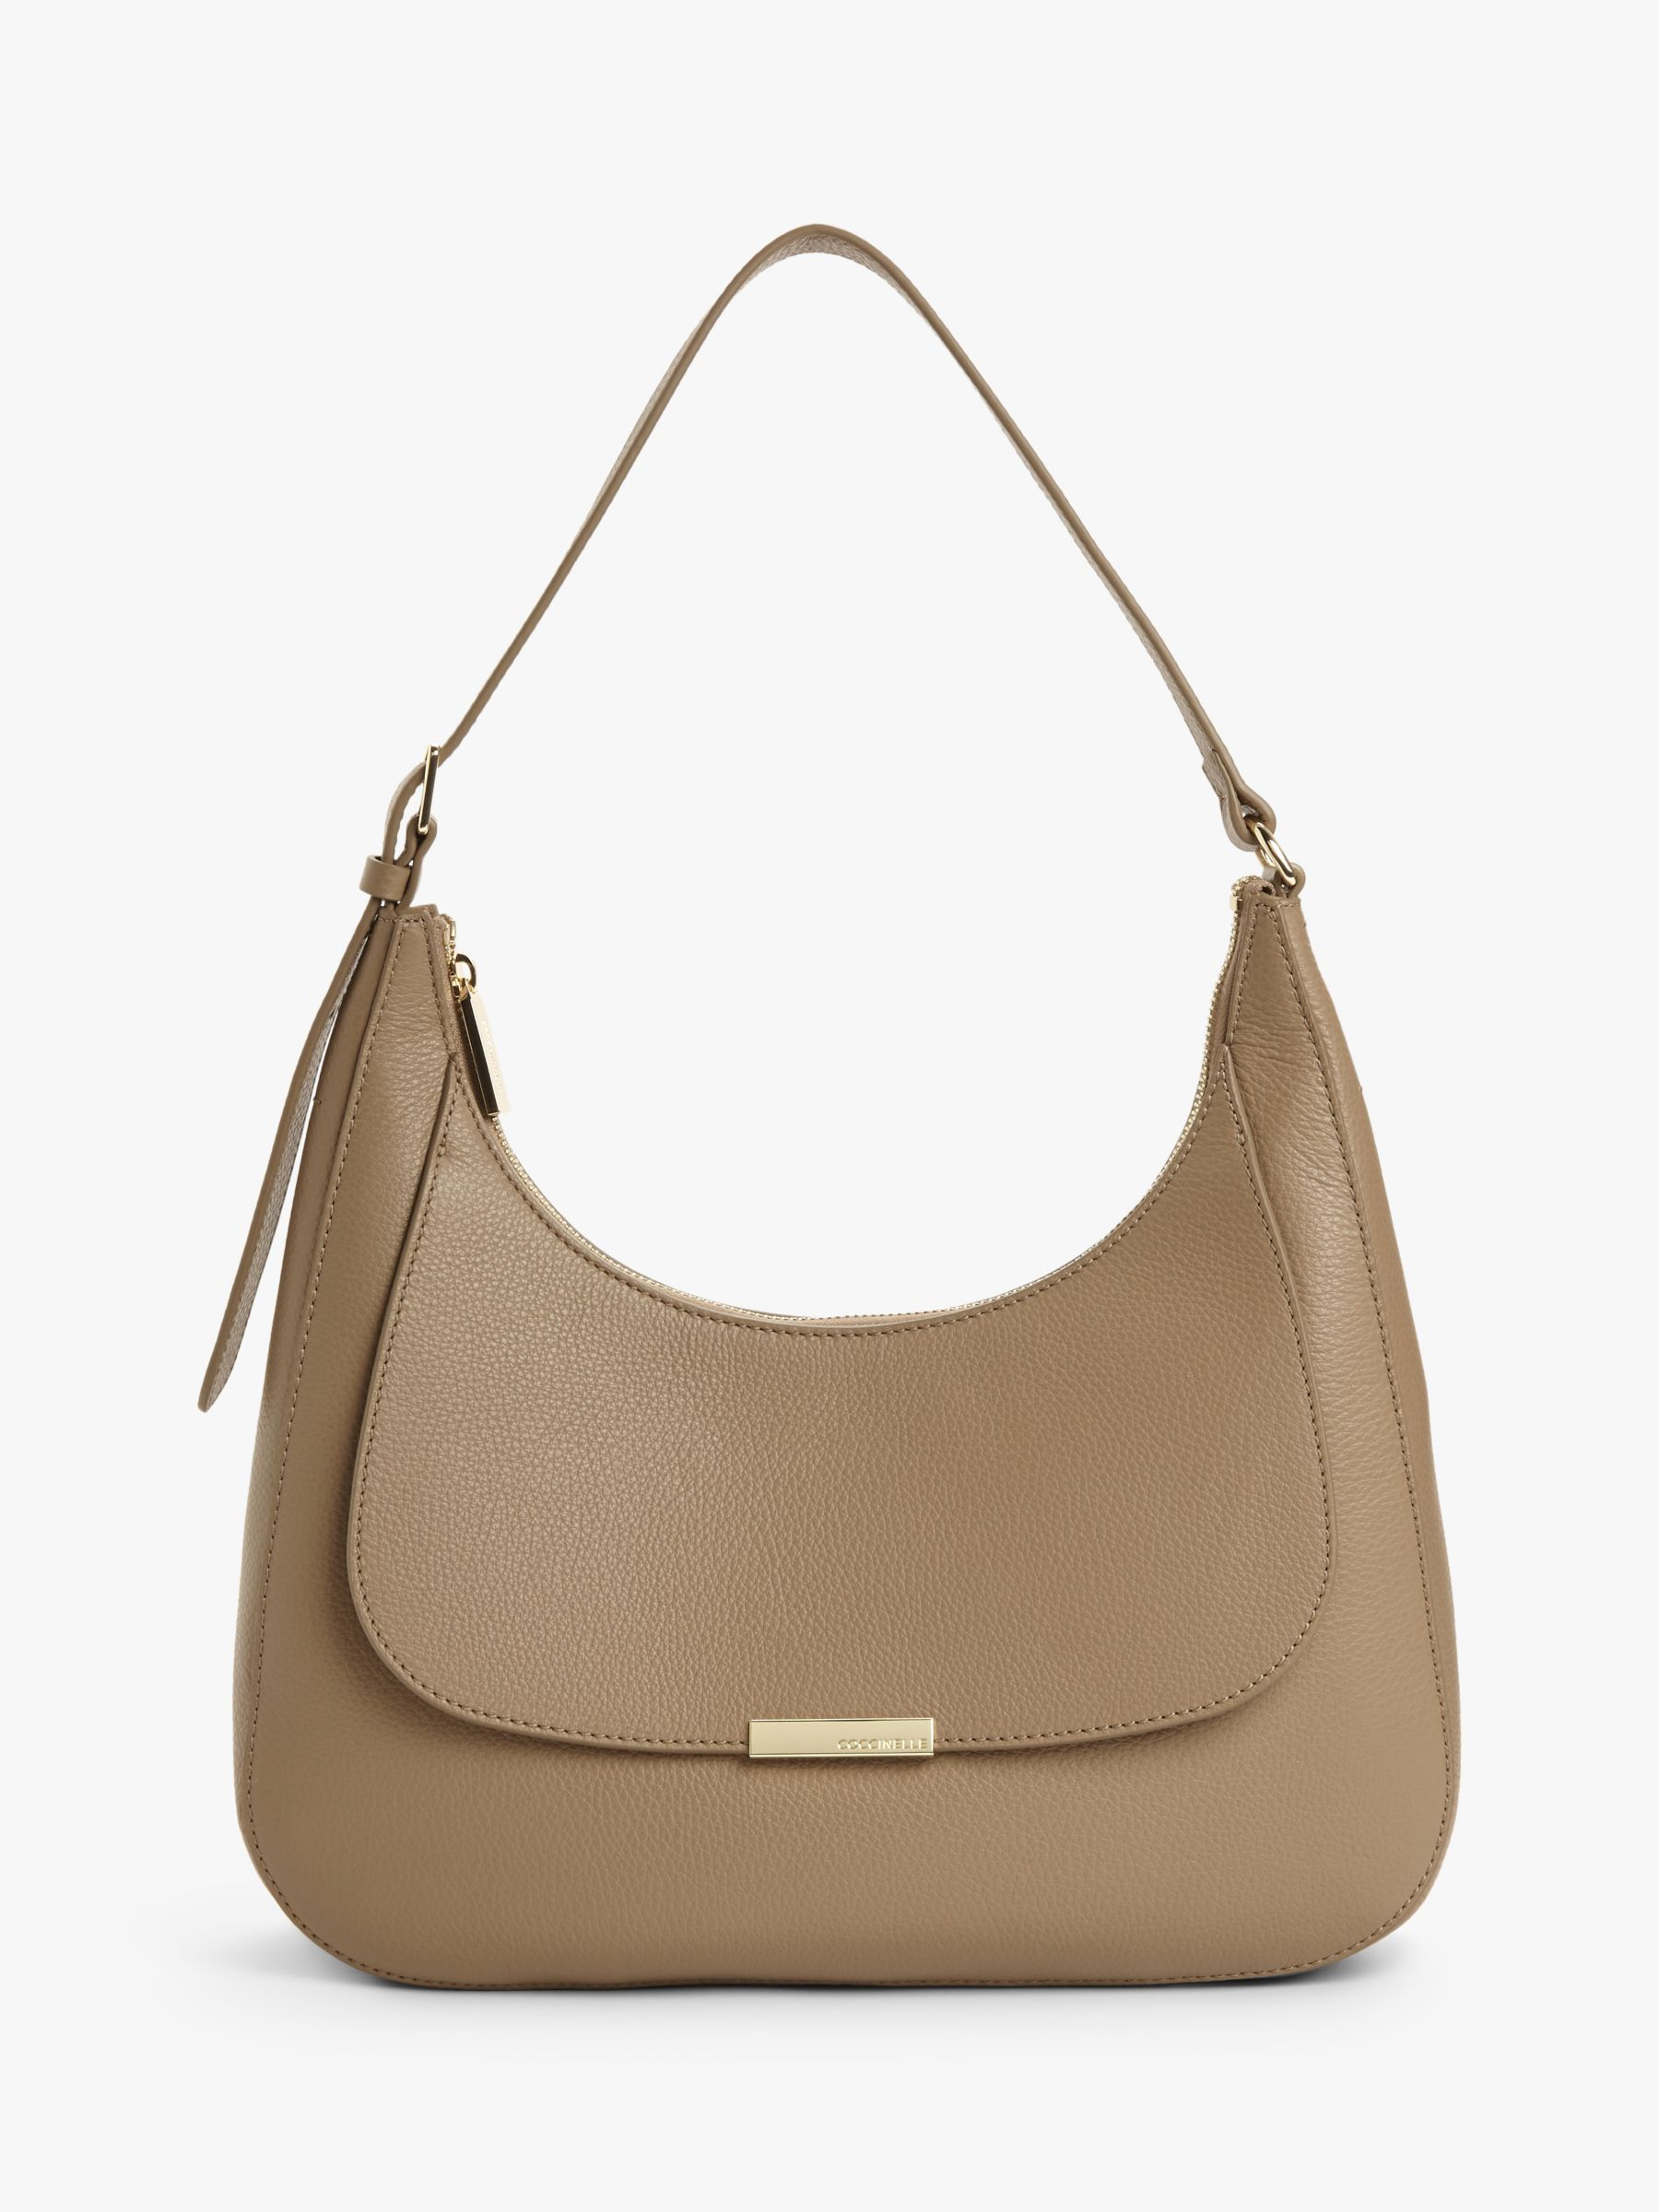 Coccinelle Coccinelle Cher Leather Shoulder Bag